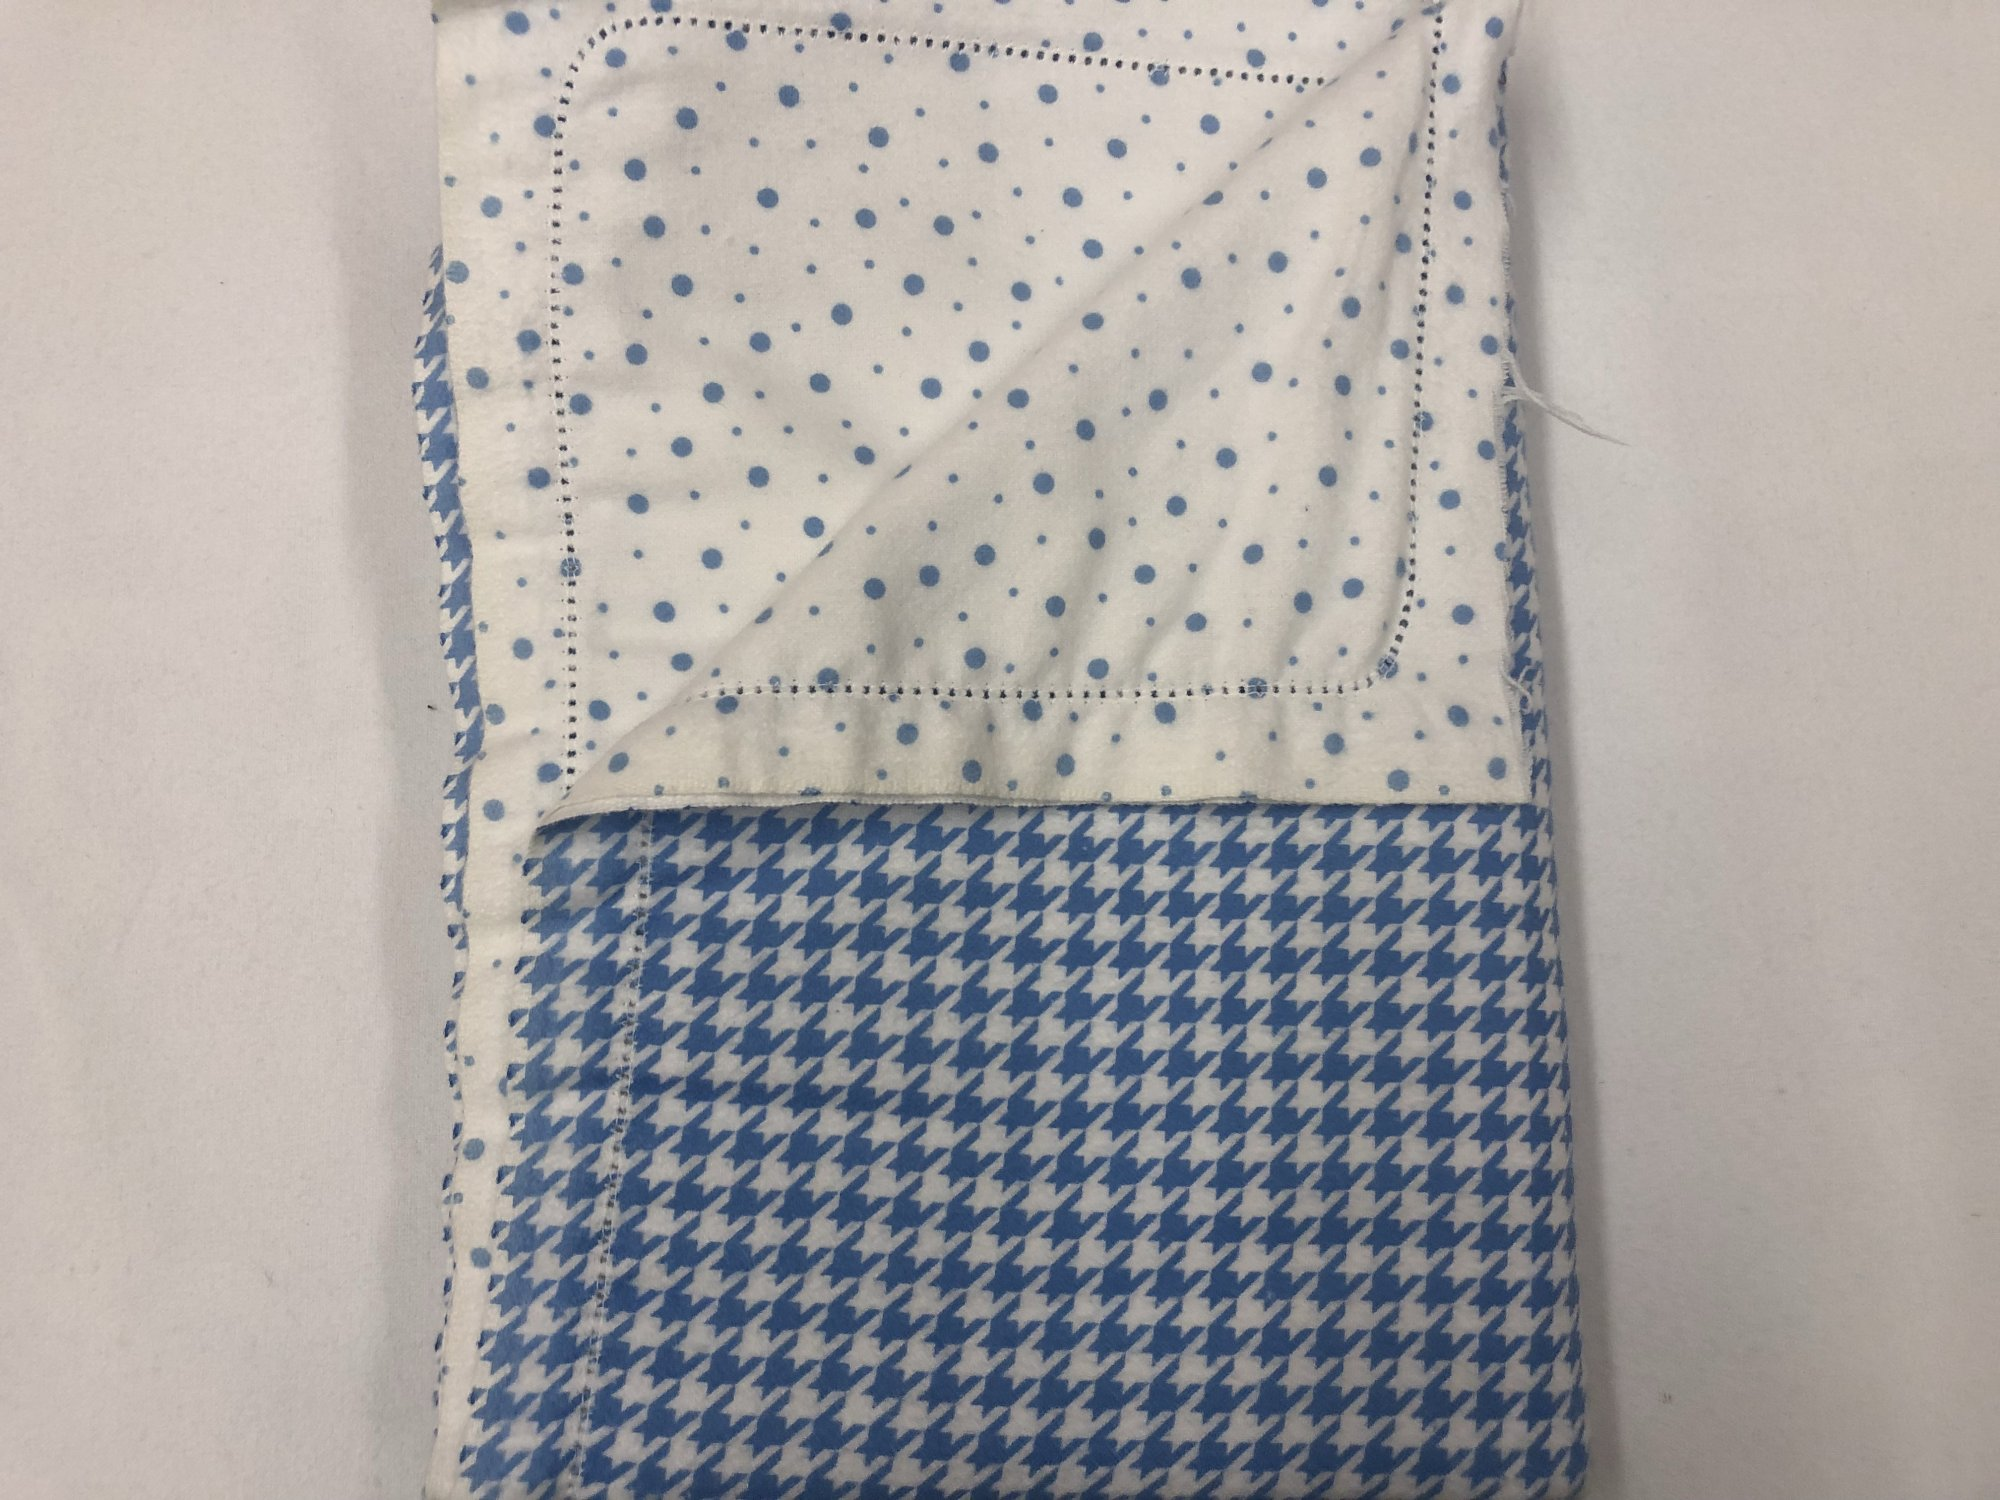 Blue and white houndstooth/Blue dots on white background